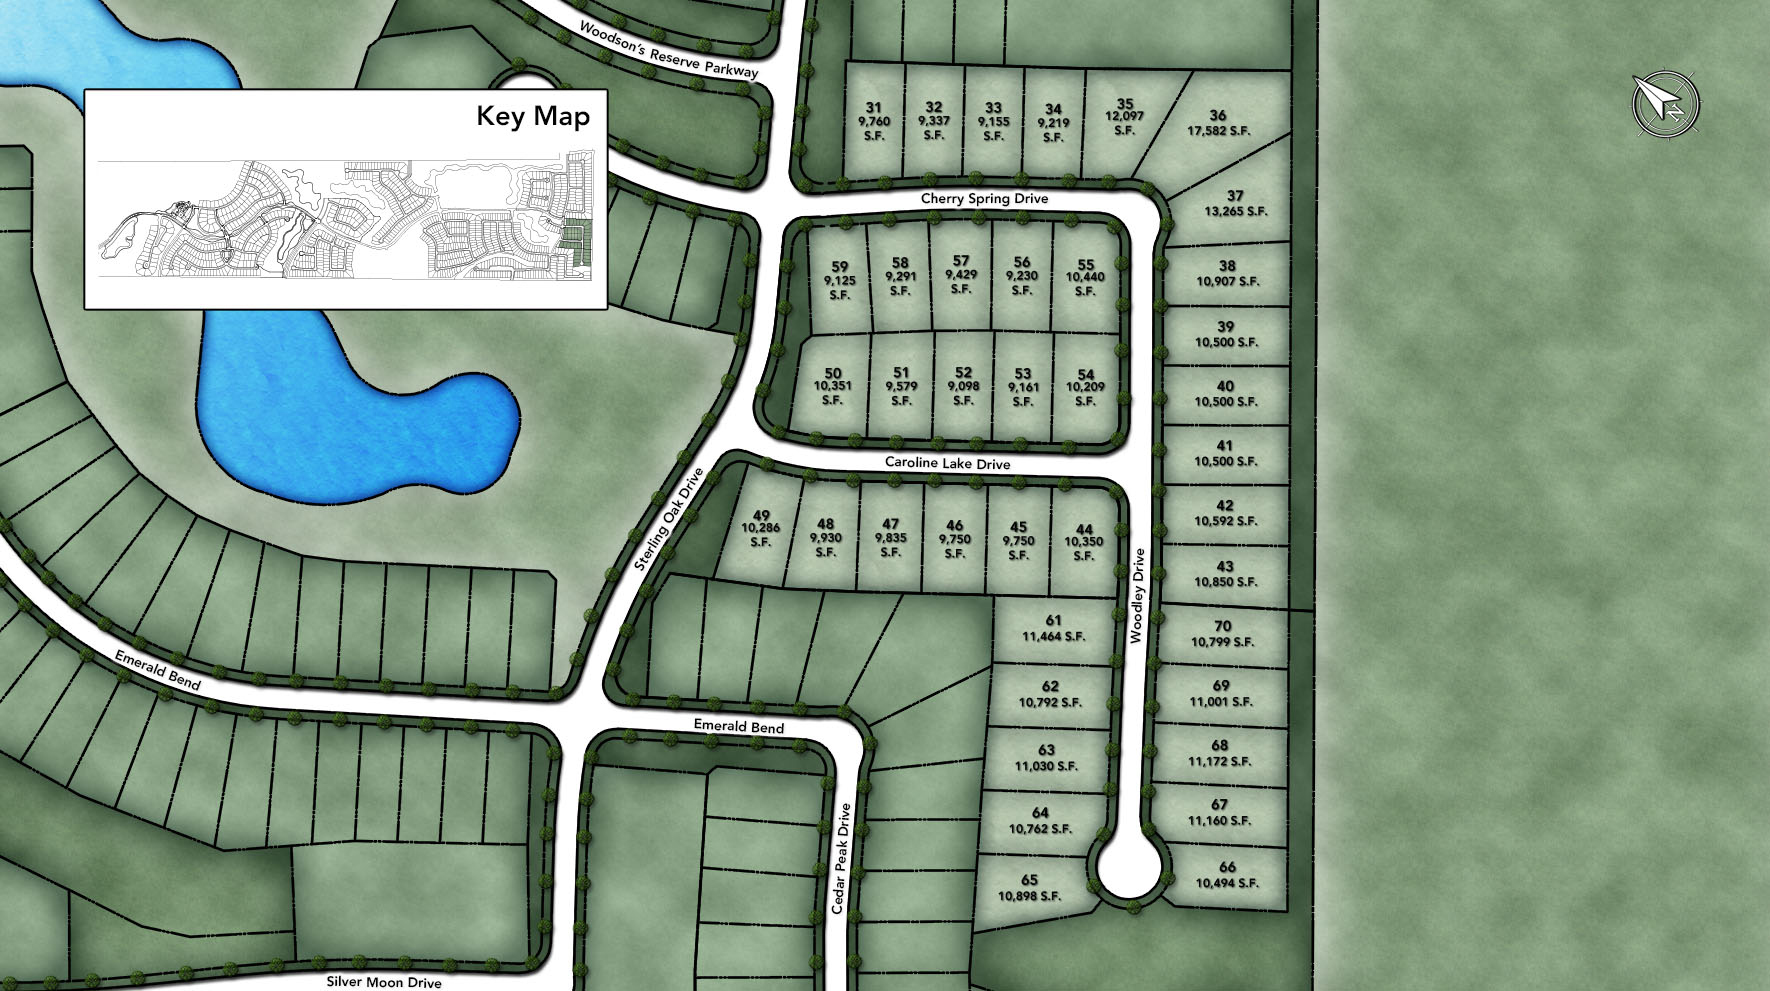 Woodson's Reserve - Executive Collection Site Plan I